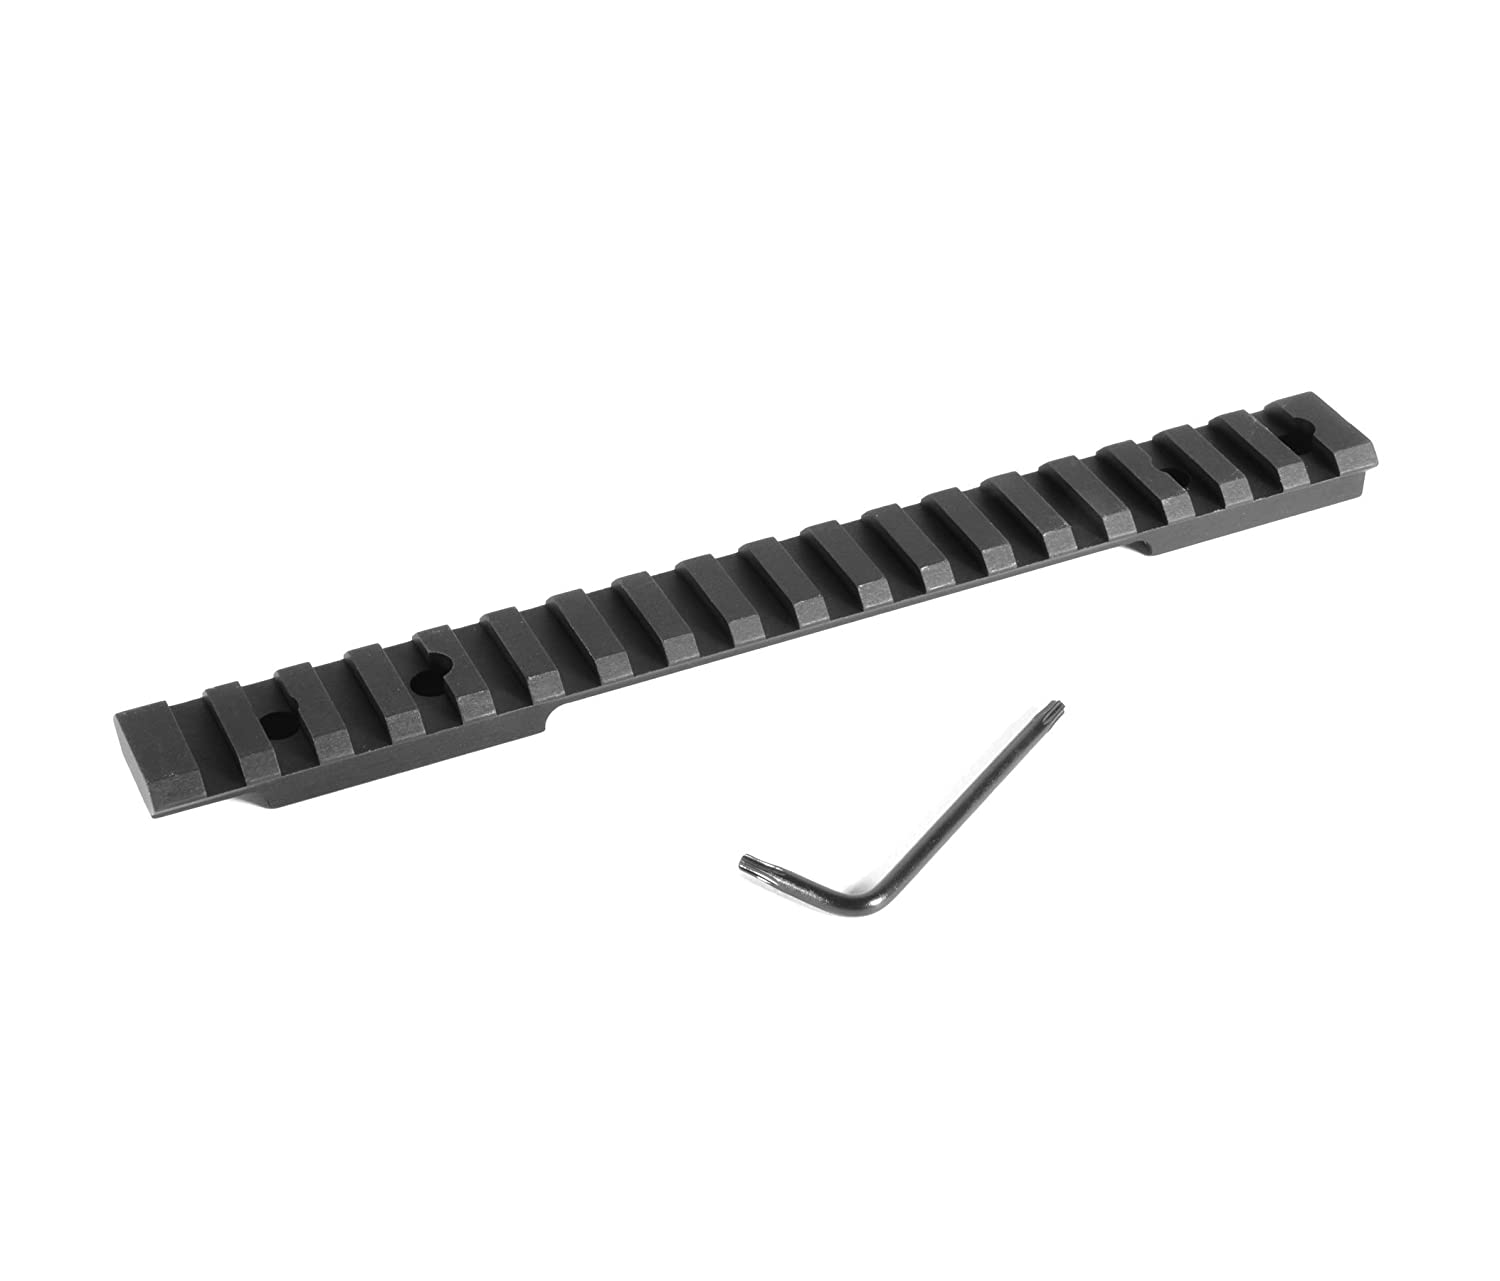 EGW HD Savage Round Back Long Action 20 MOA Drilled for 8-40 Screws